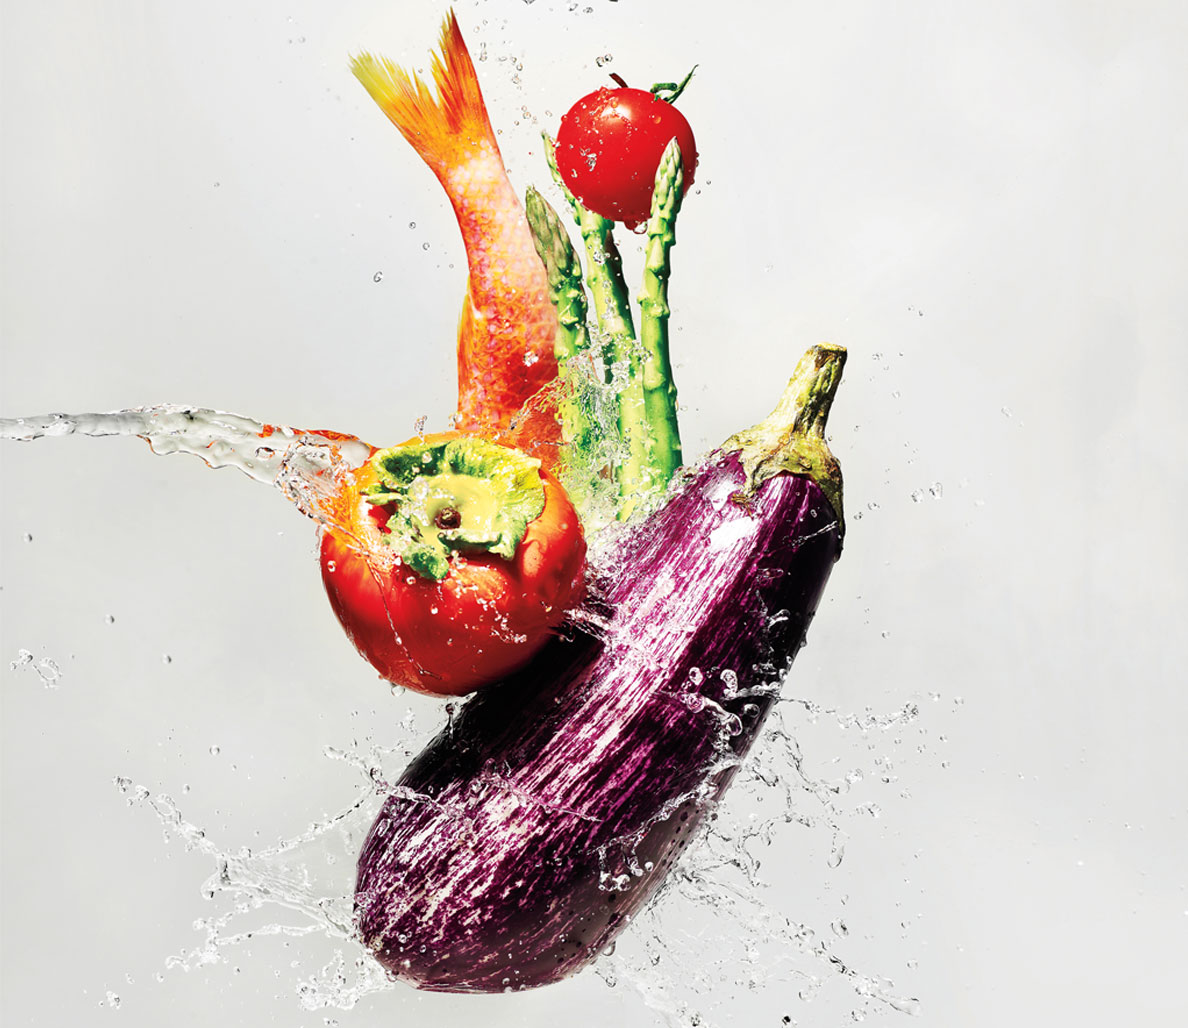 How to Eat Clean: Best Foods, Weight Loss, and What to Avoid